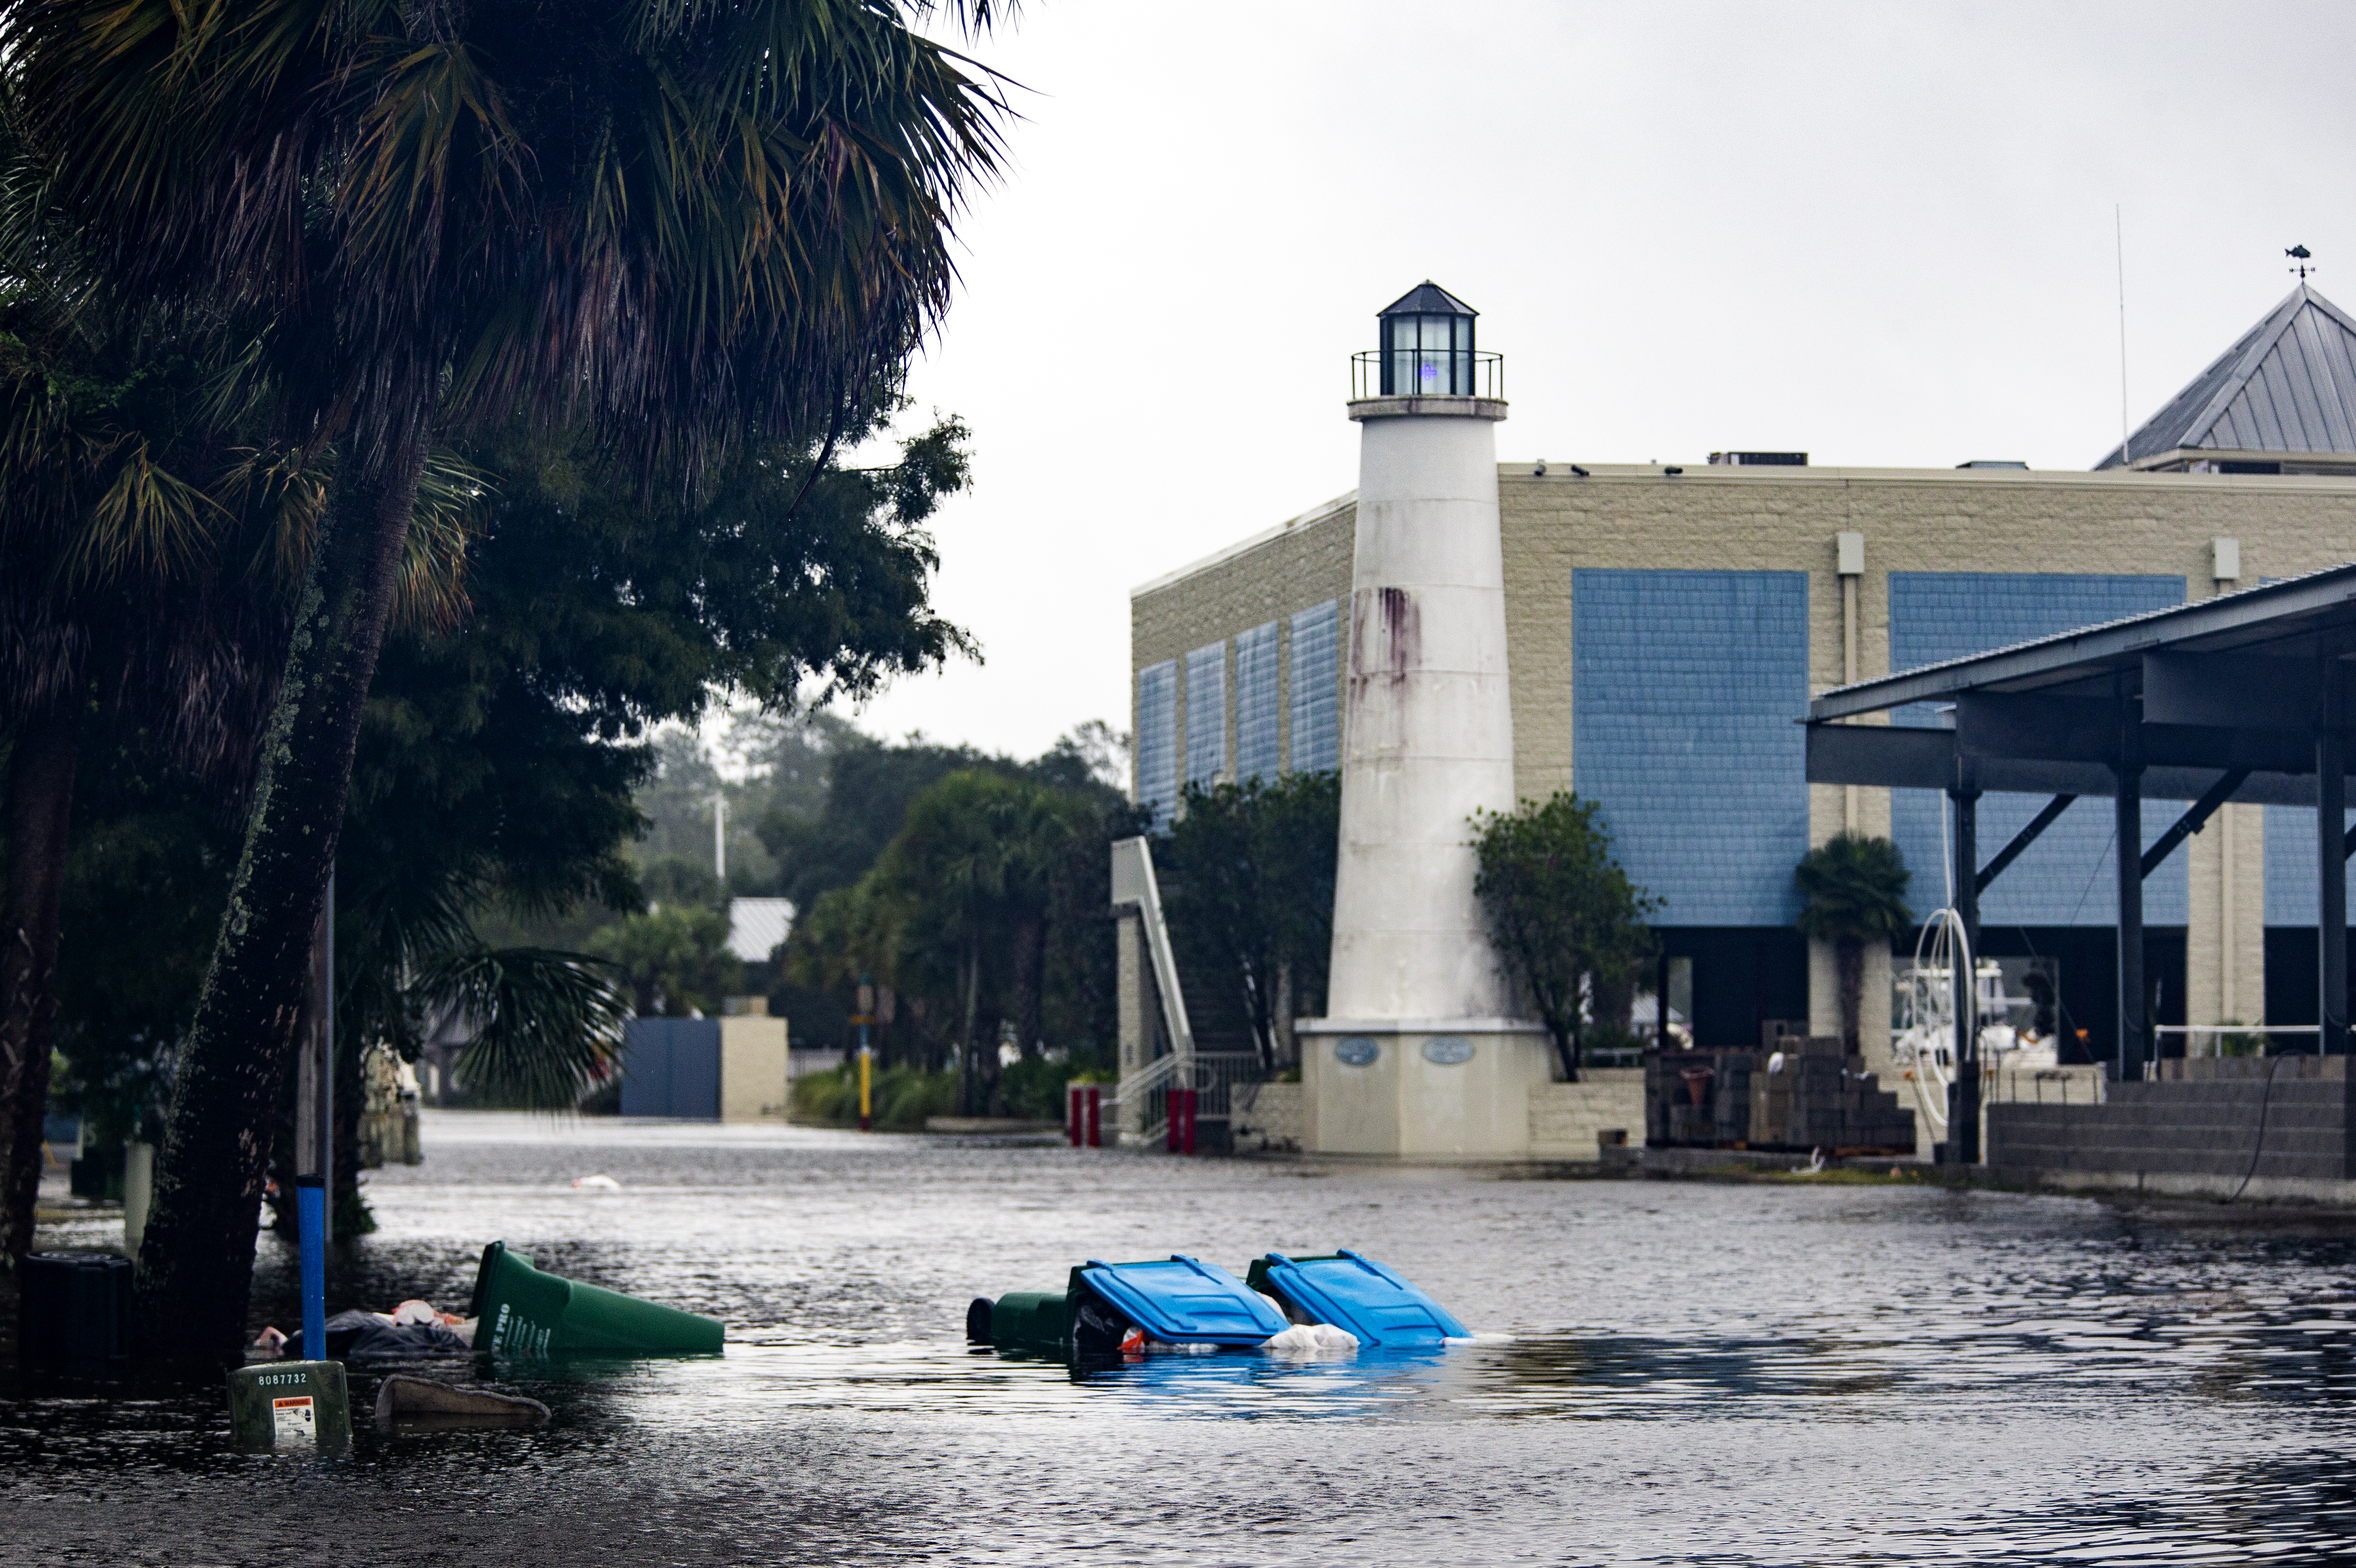 Shields Marina starts taking water in the town of Saint Marks as Hurricane Michael pushes the storm surge up the Wakulla and Saint Marks Rivers which come together here on October 10, 2018 in Saint Marks, Florida. The hurricane is forecast to hit the Florida Panhandle at a possible category 4 storm.